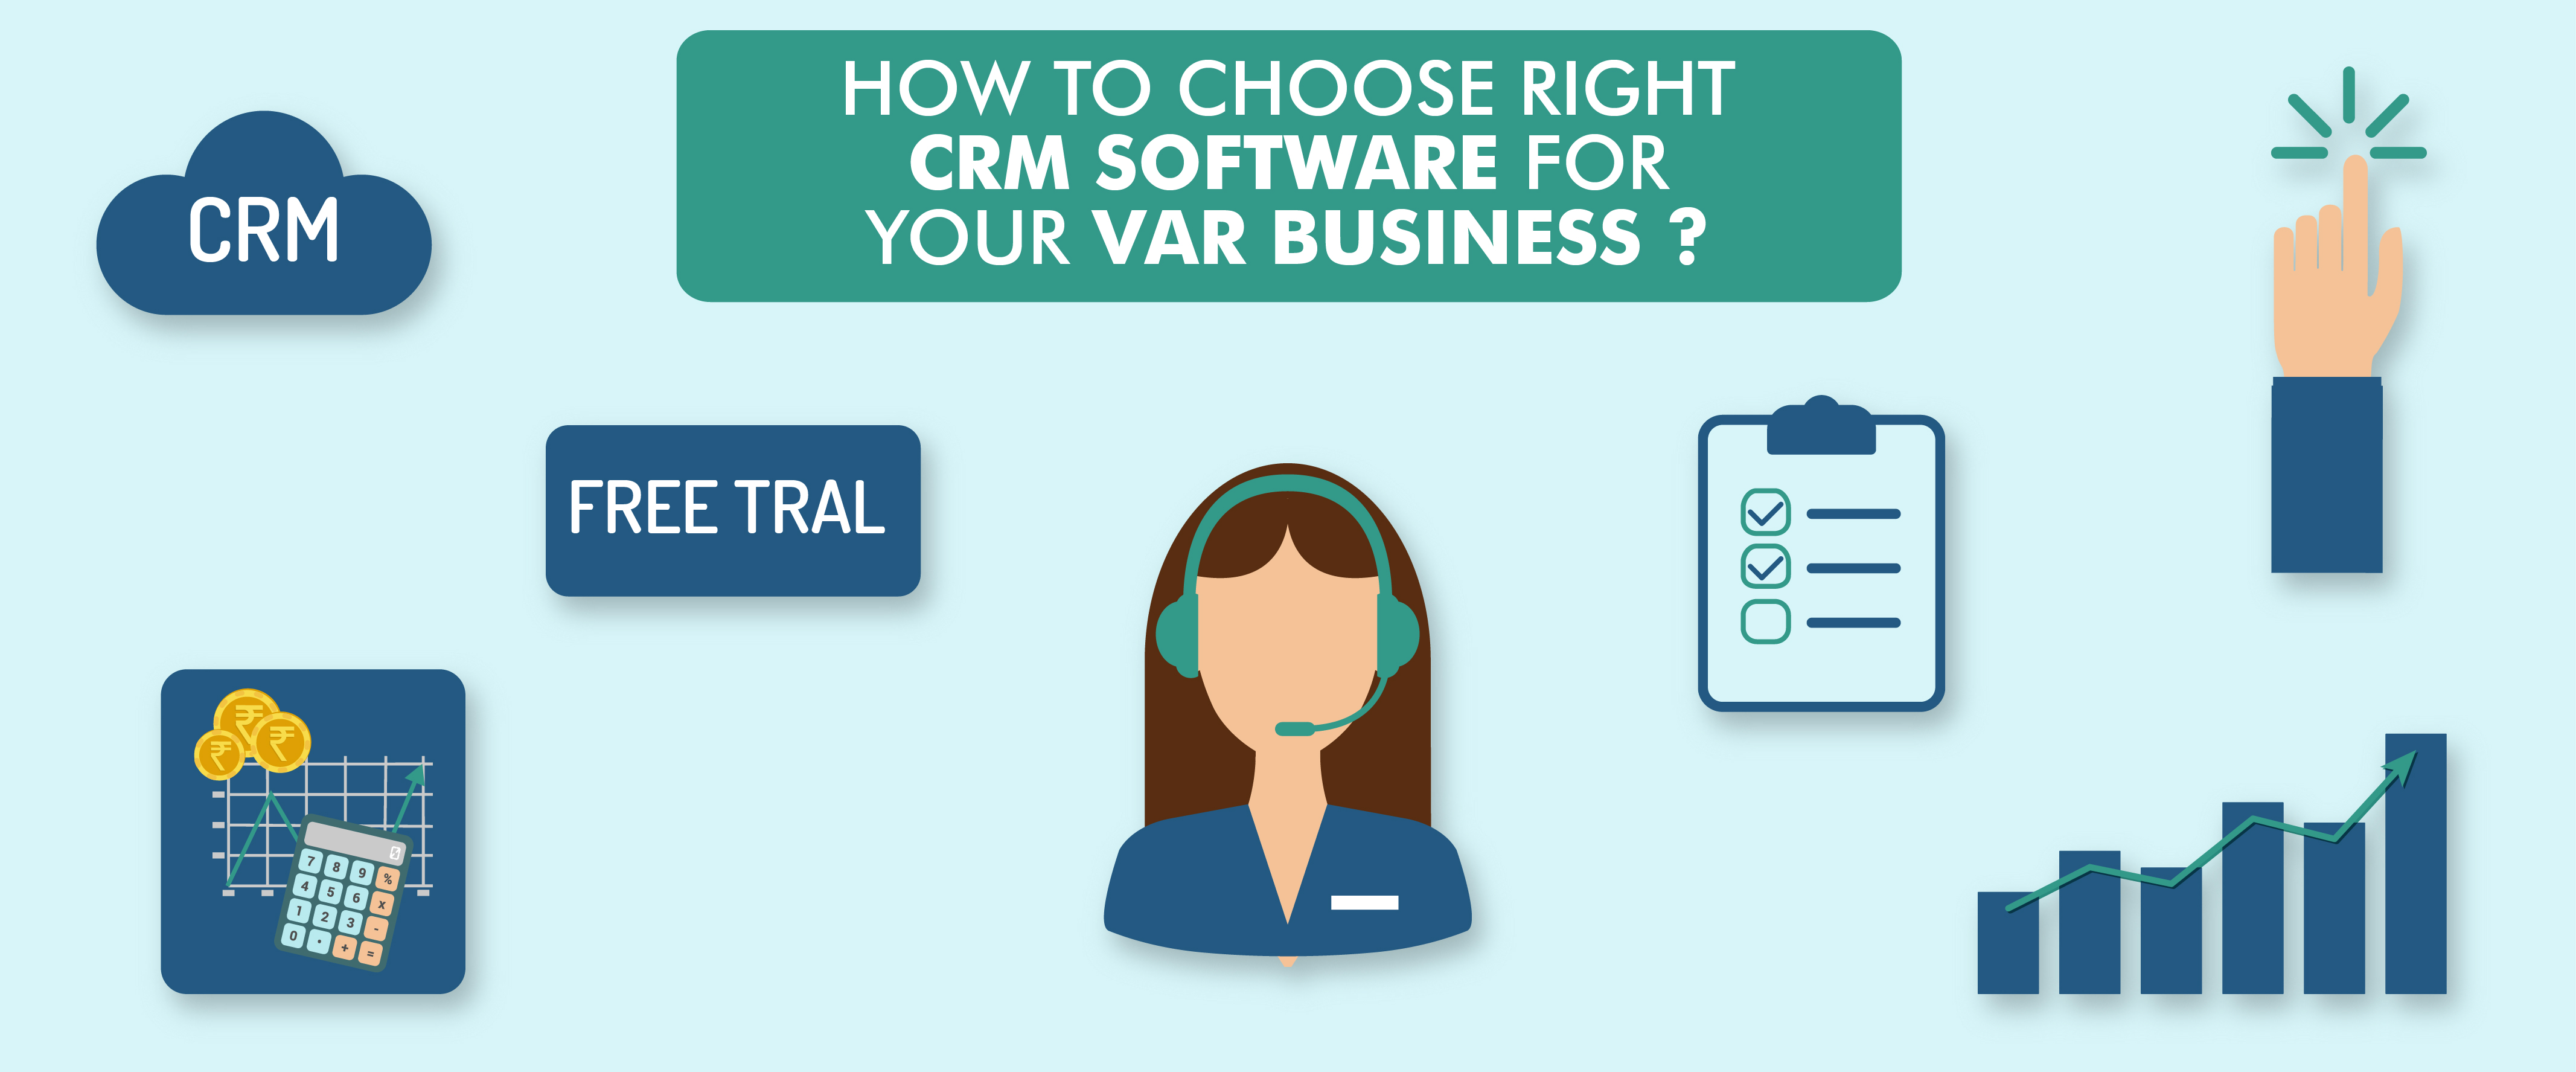 How to Choose Right CRM Software for Your VAR Business